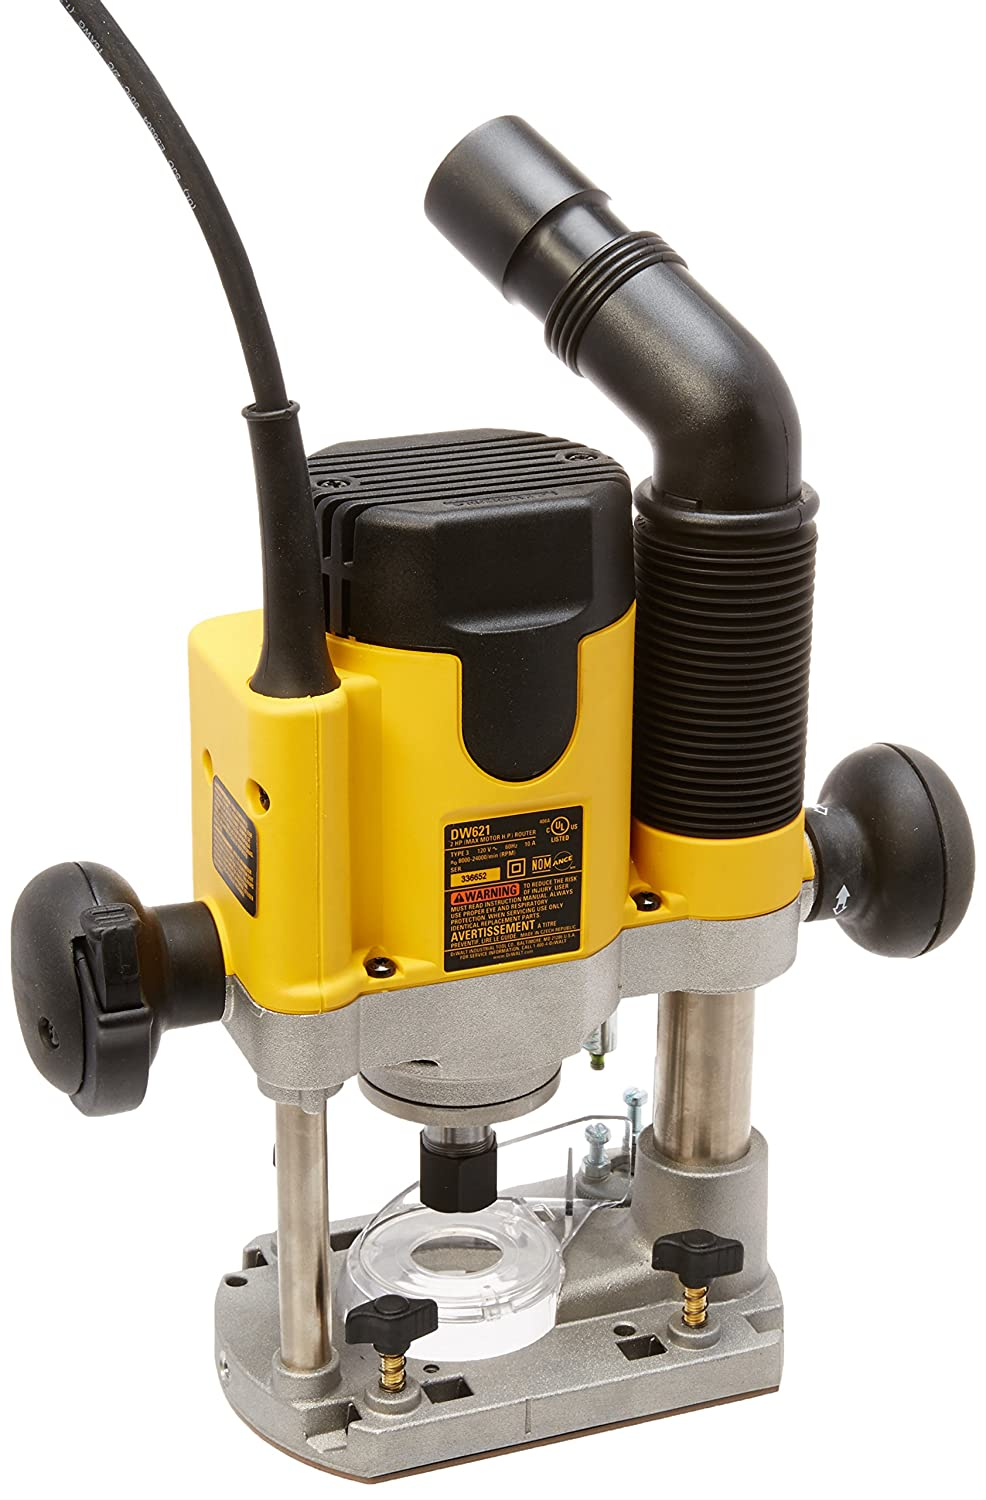 Dewalt dw621 2 horsepower plunge router power routers amazon greentooth Choice Image